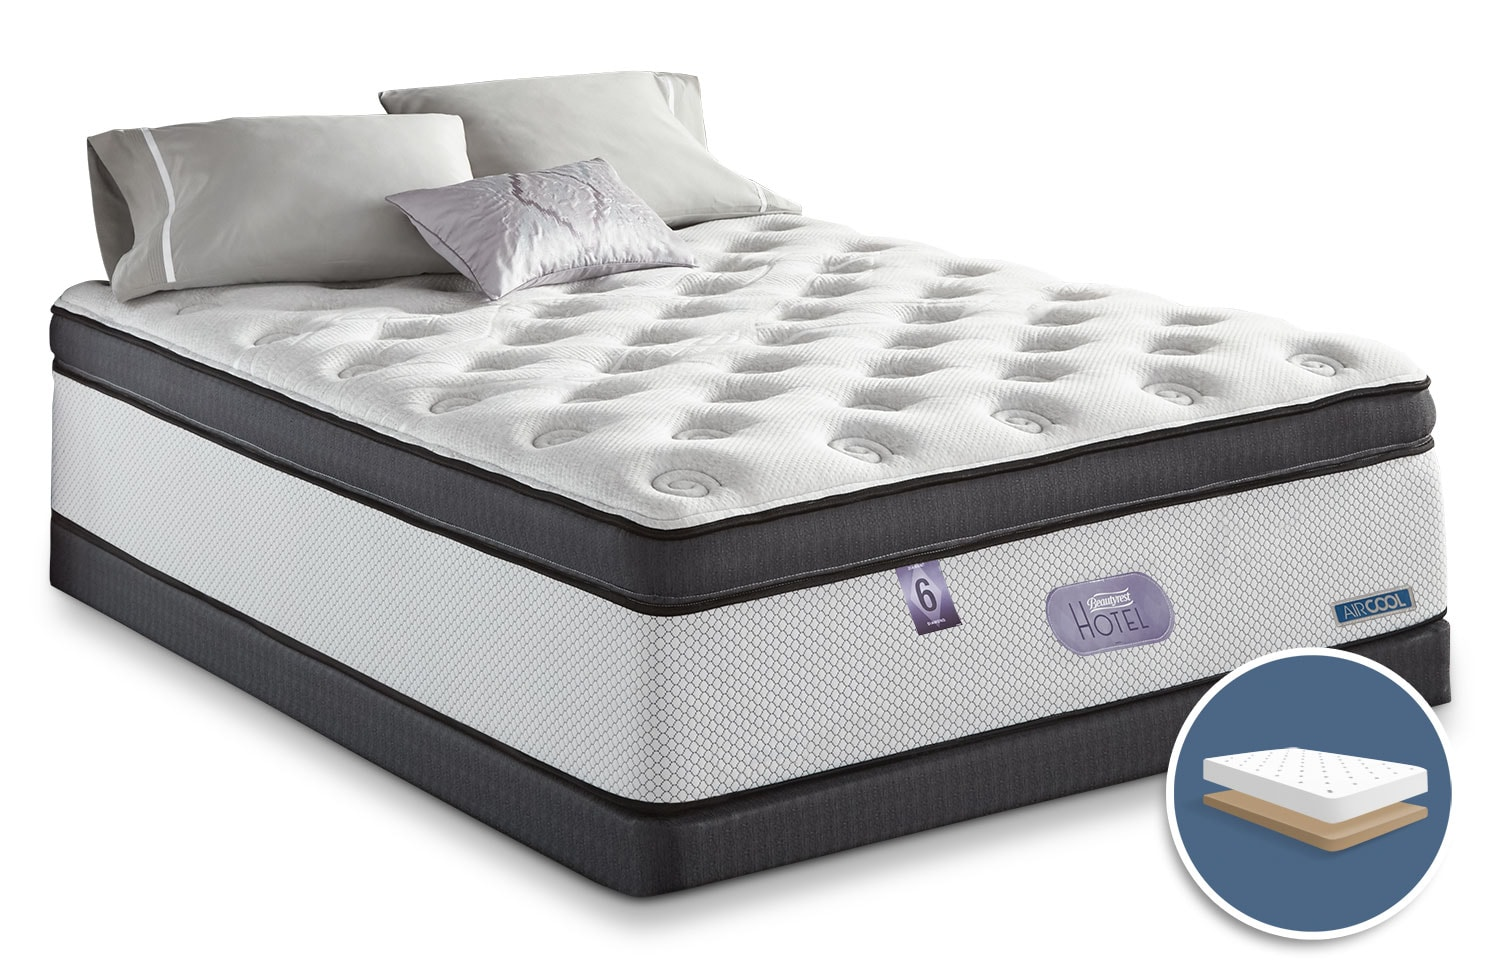 Mattresses and Bedding - Simmons Beautyrest® Hotel Diamond 6.0 Ultra Comfort Top Plush Low-Profile Full Mattress Set